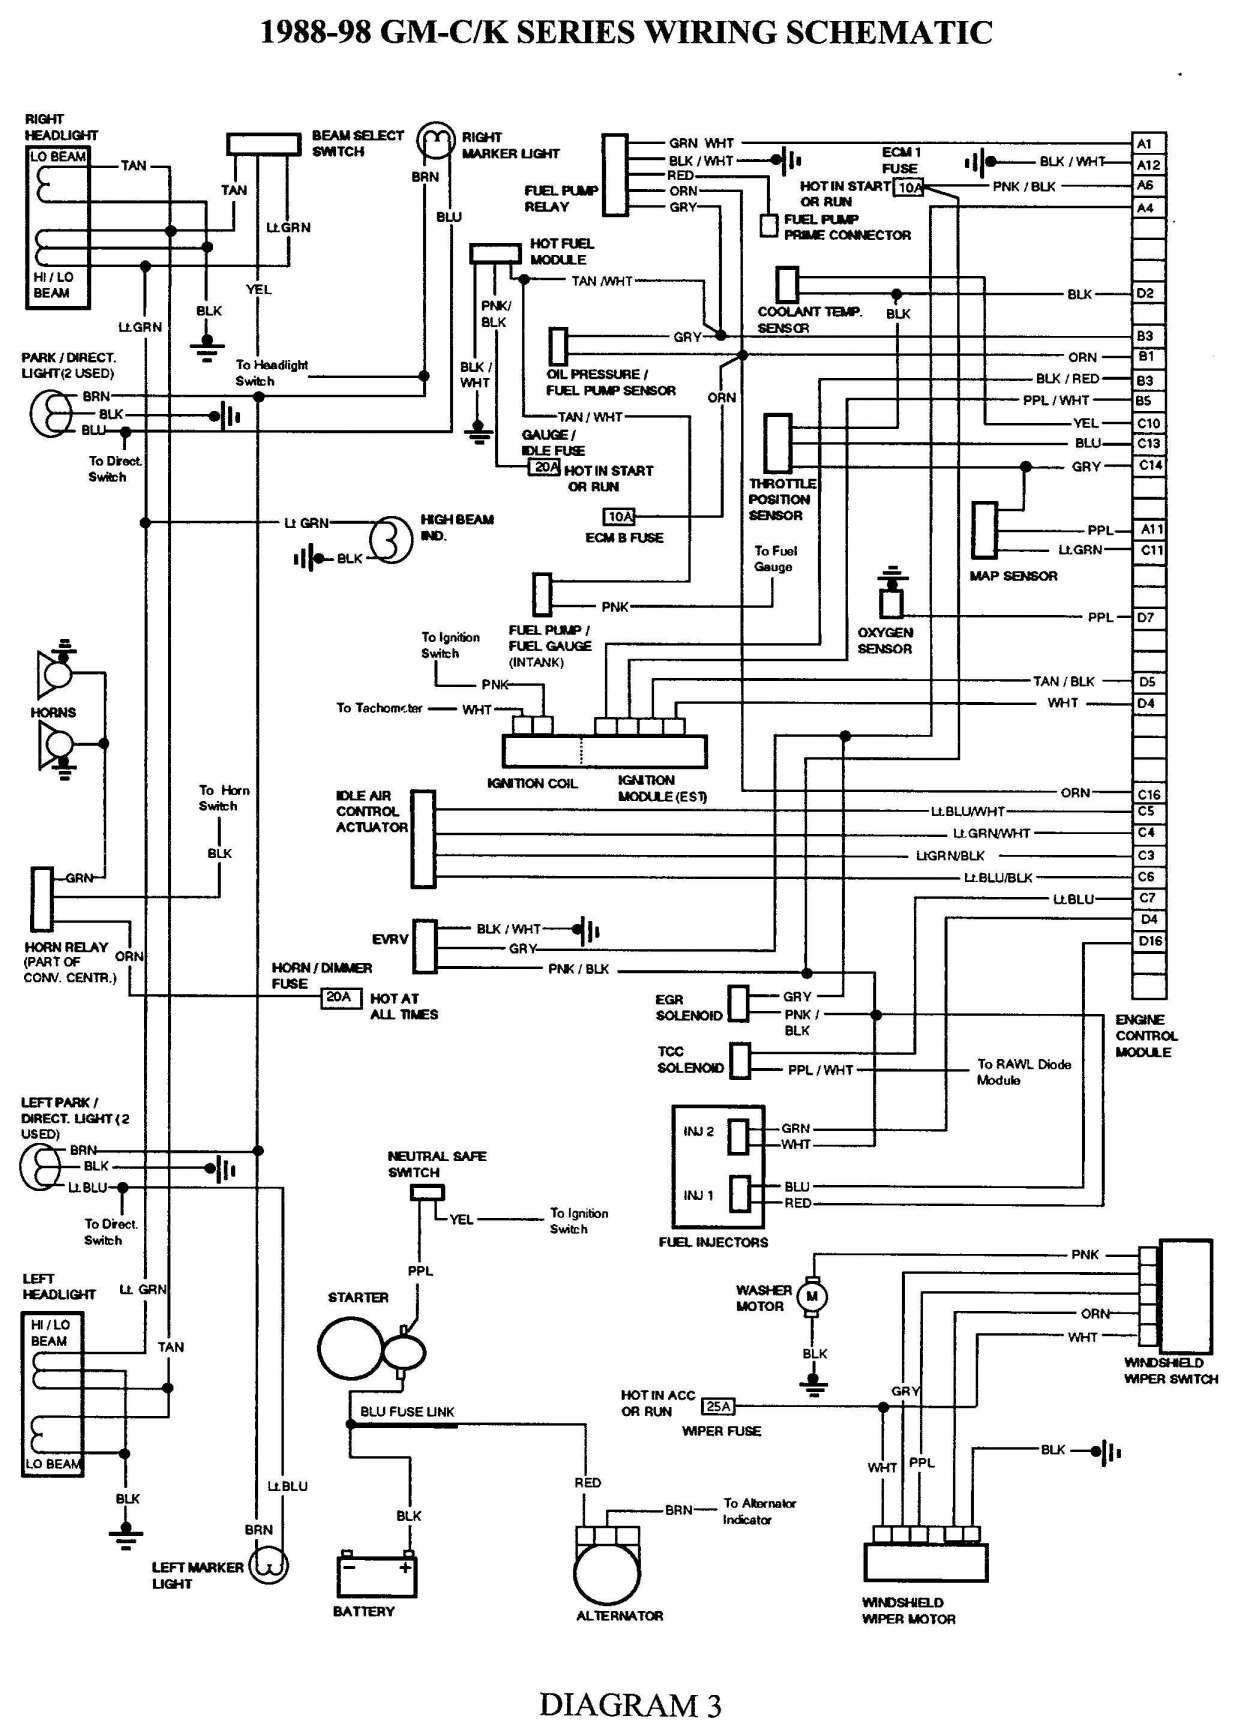 12 Chevy Truck Wiring Harness Diagram Electrical Diagram 1986 Chevy Truck Electrical Wiring Diagram